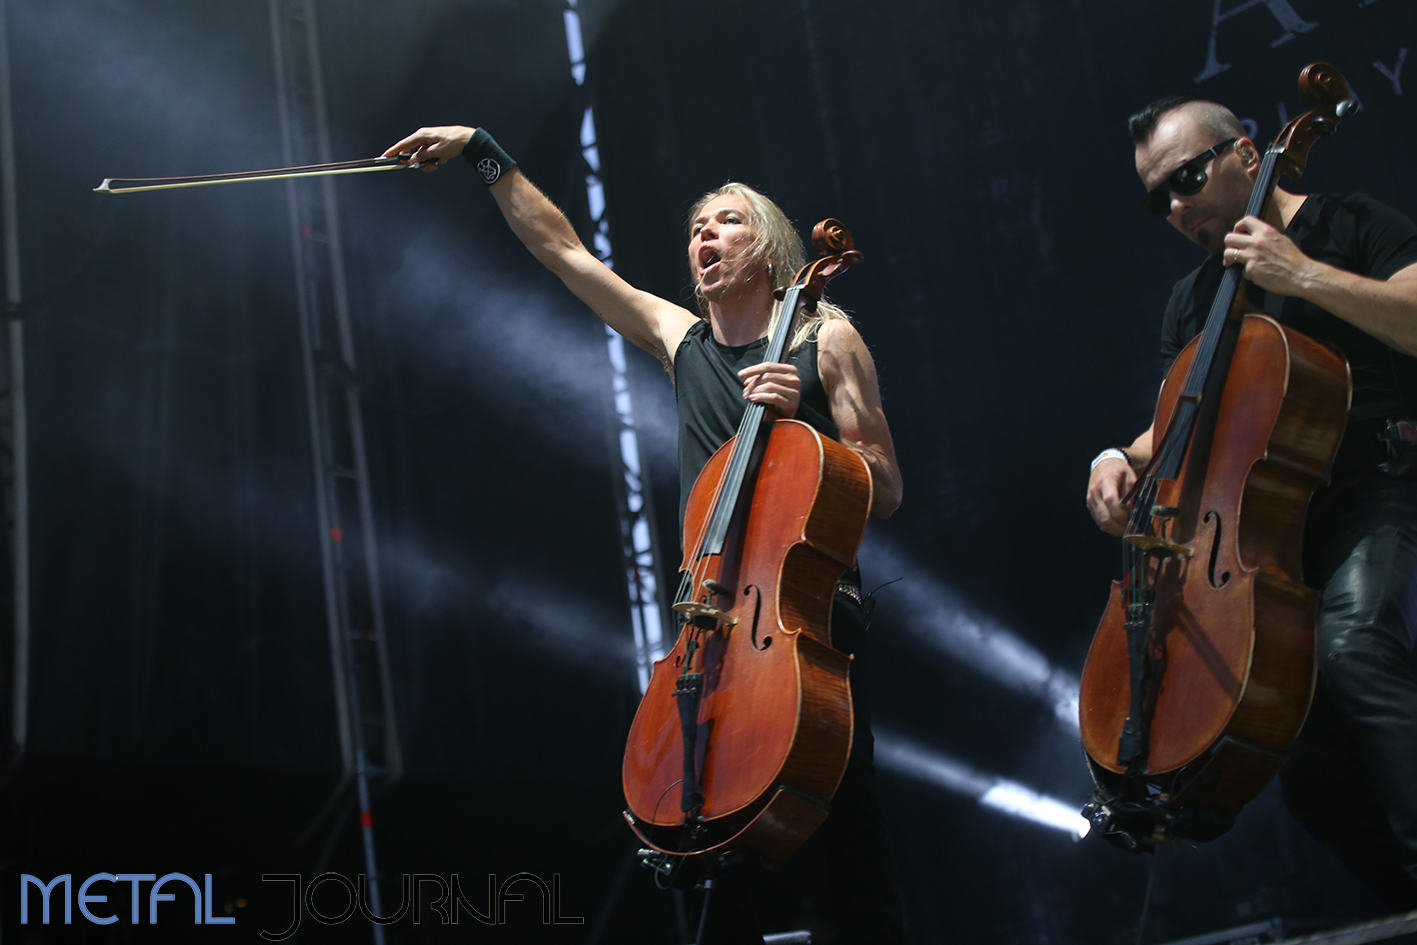 apocalyptica - leyendas del rock 2019 metal journal pic 3